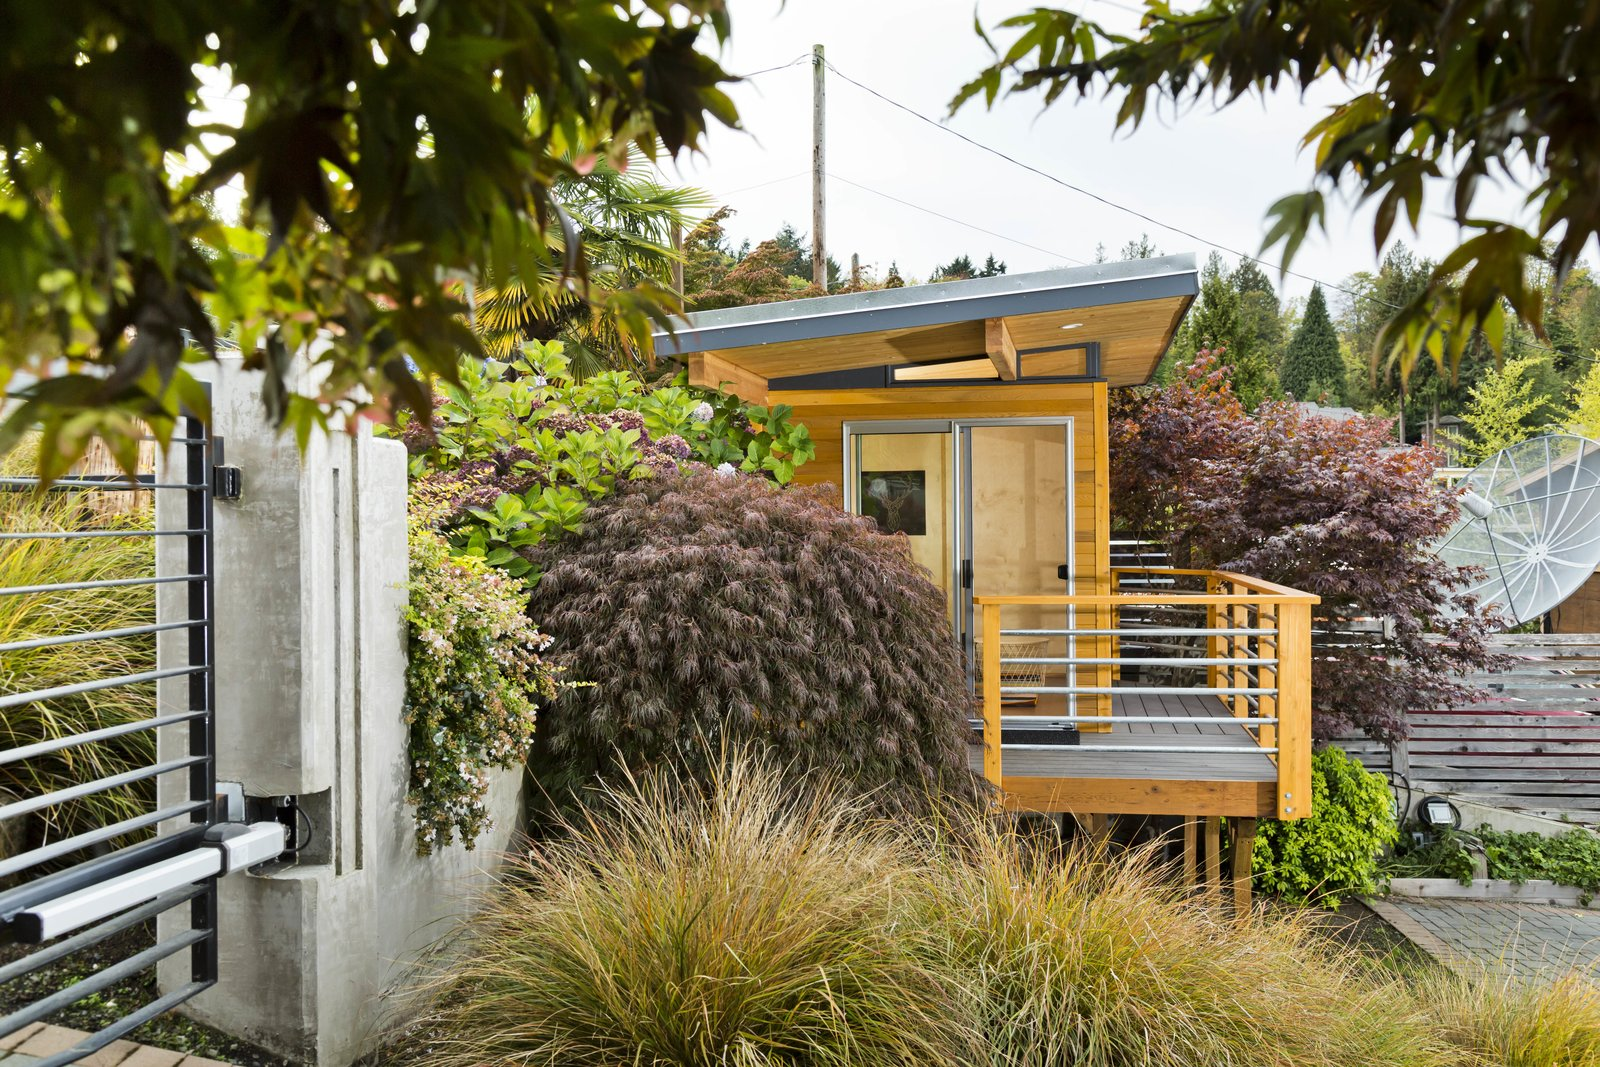 Modern-Shed Office Studio by Modern-Shed, Inc